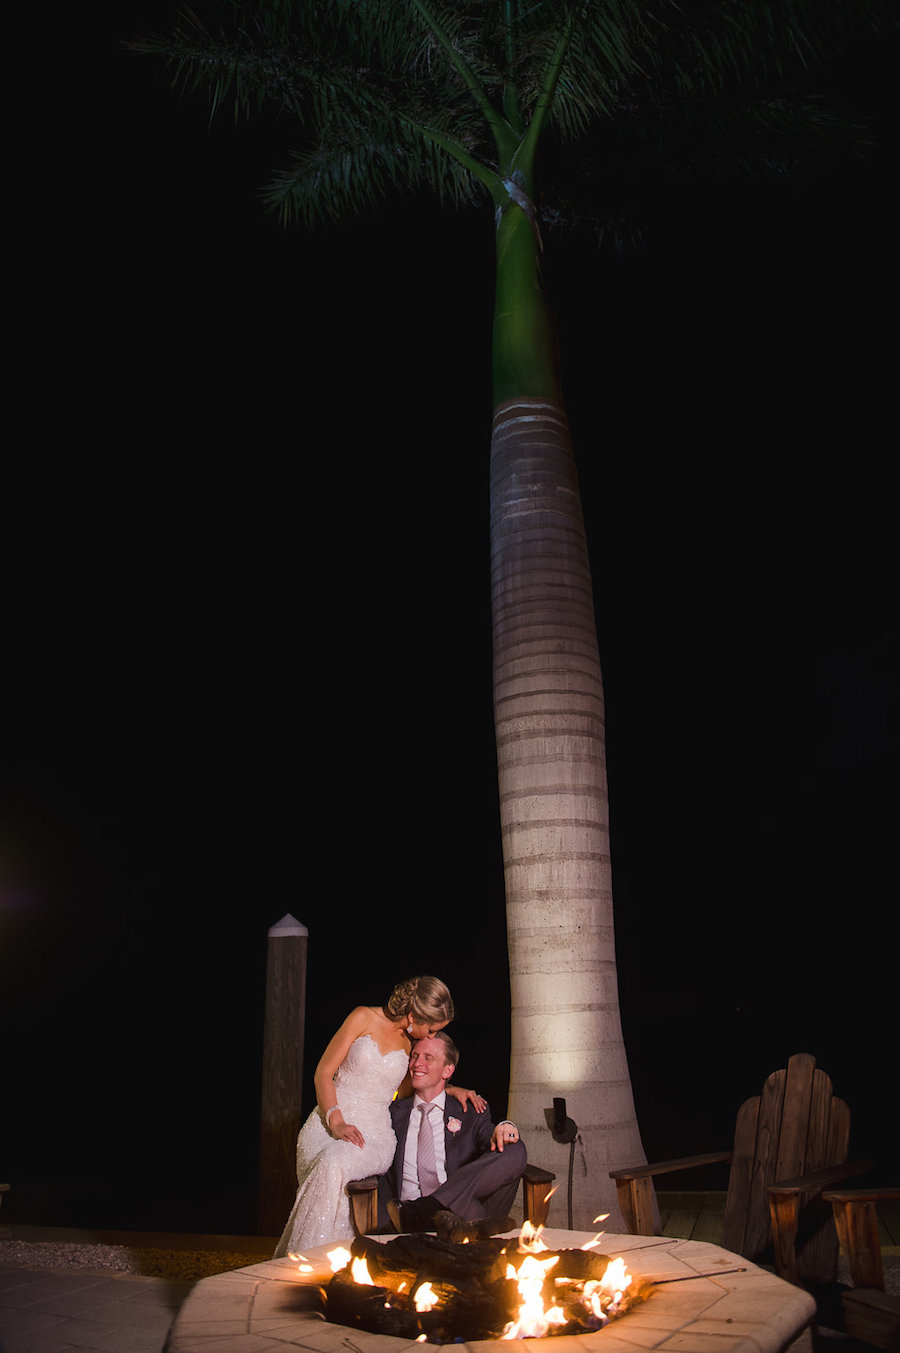 Bride and Groom Portrait by Wedding Reception Fire Pit | Clearwater Beach Wedding Planner Parties a la Carte | Photographer Marc Edwards Photographs